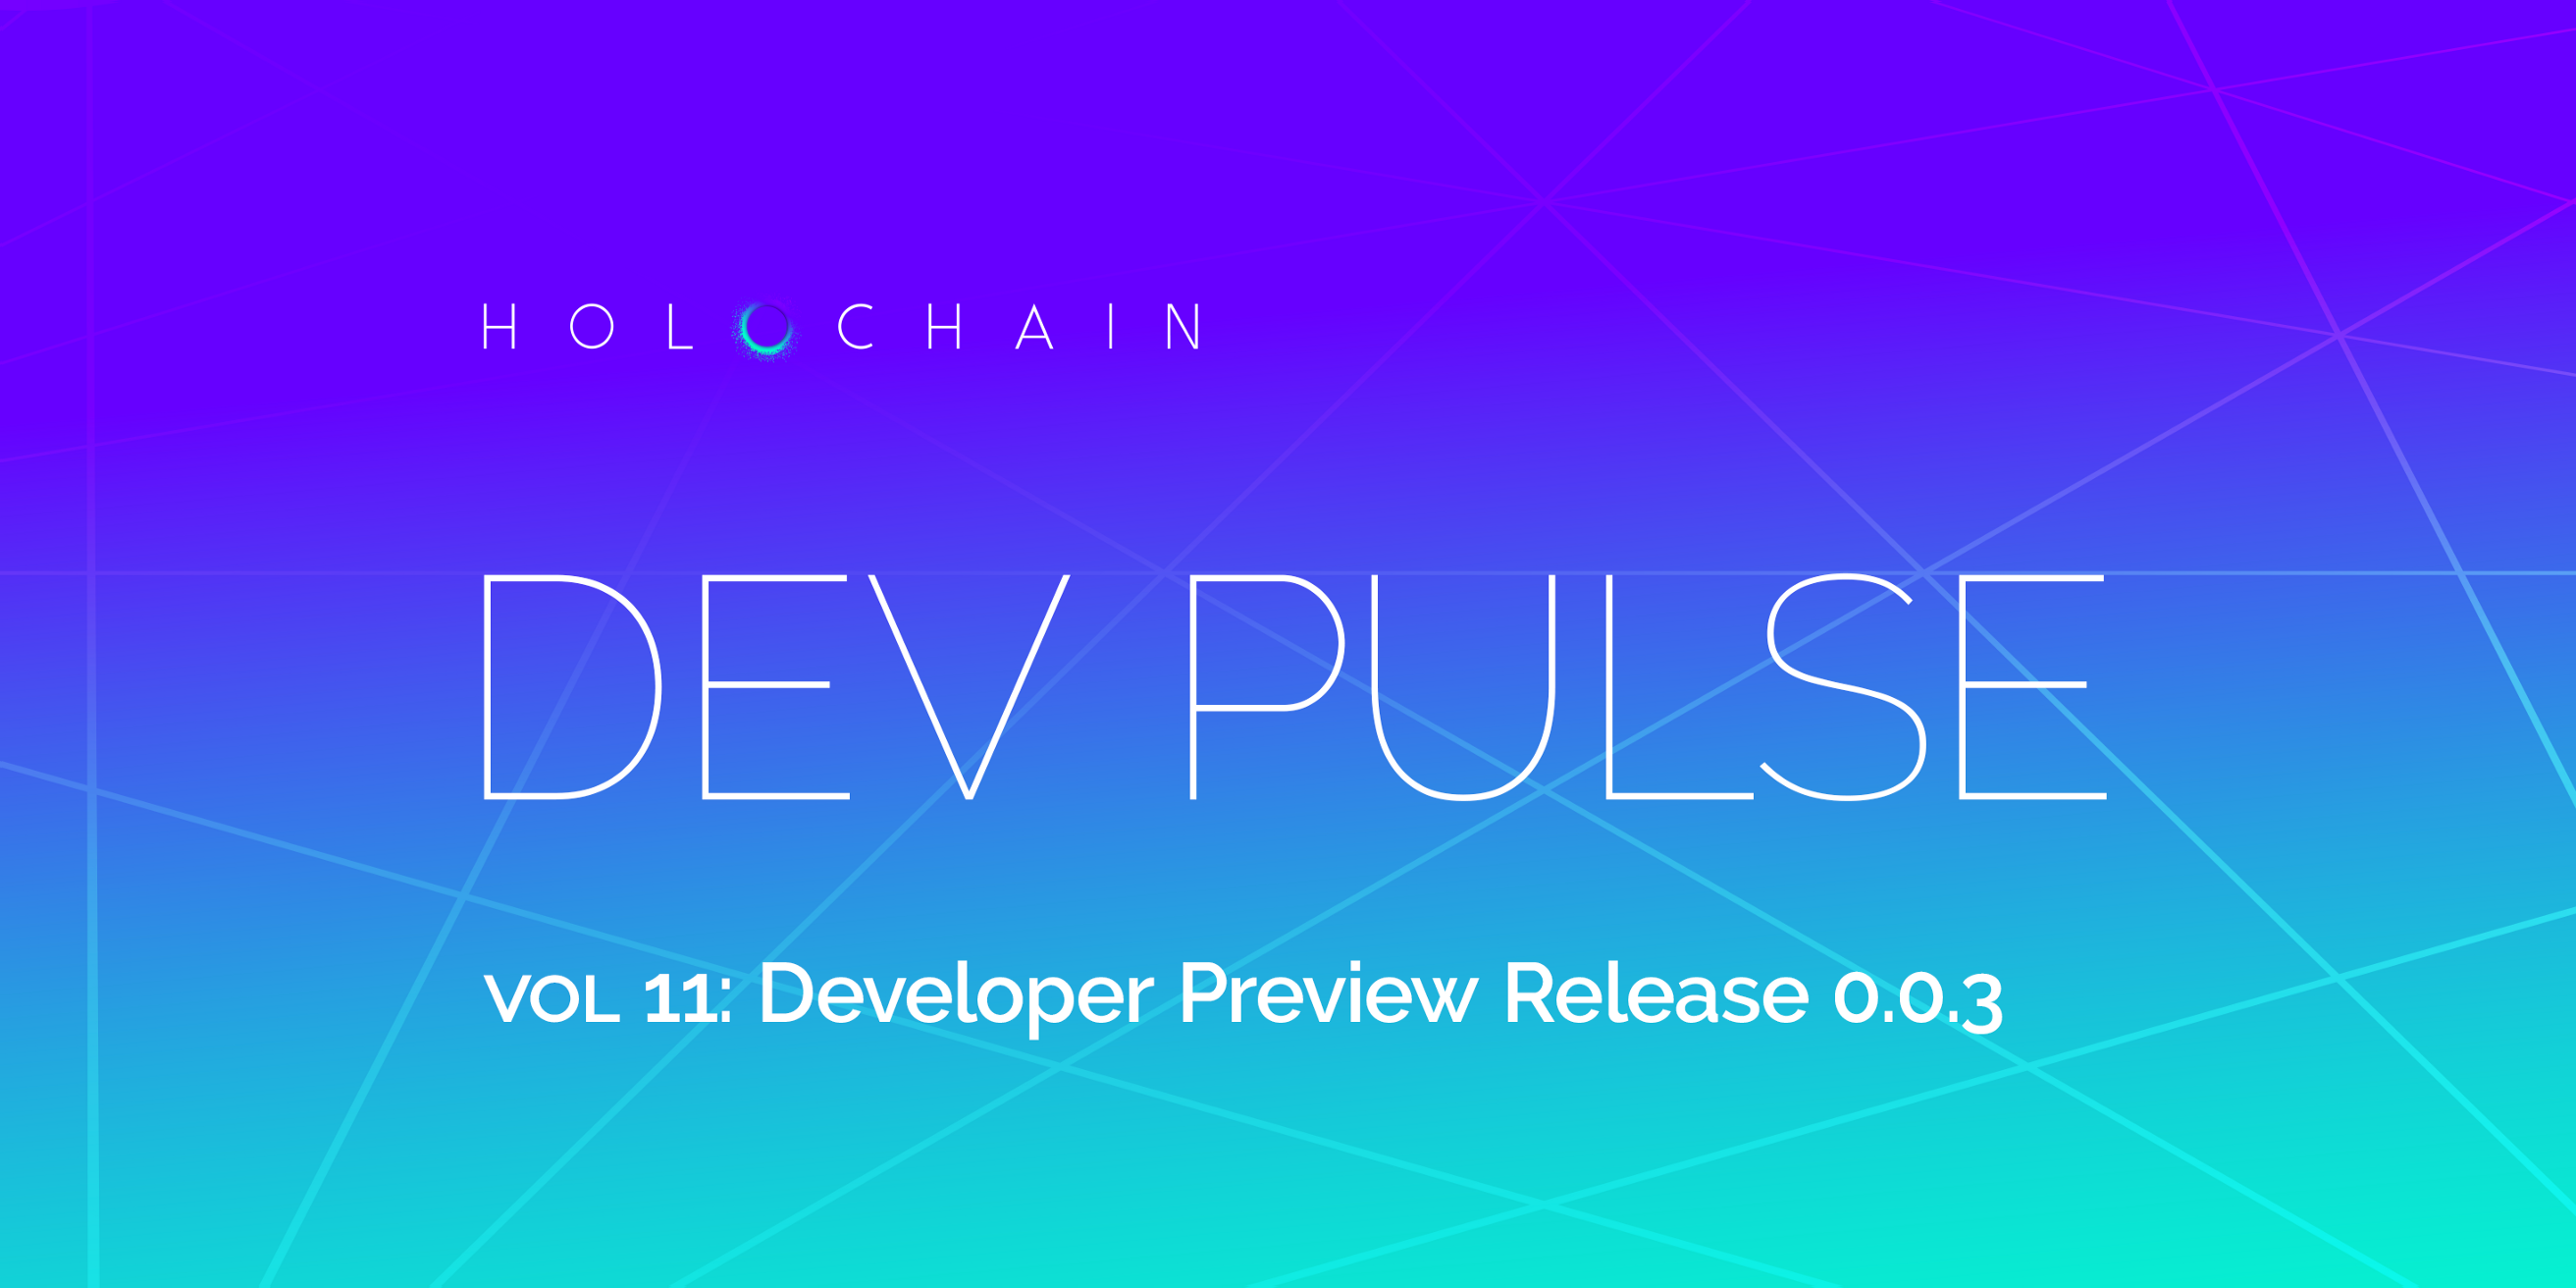 Developer Preview Release 0 0 3: Enabling P2P Networks for hApp Users